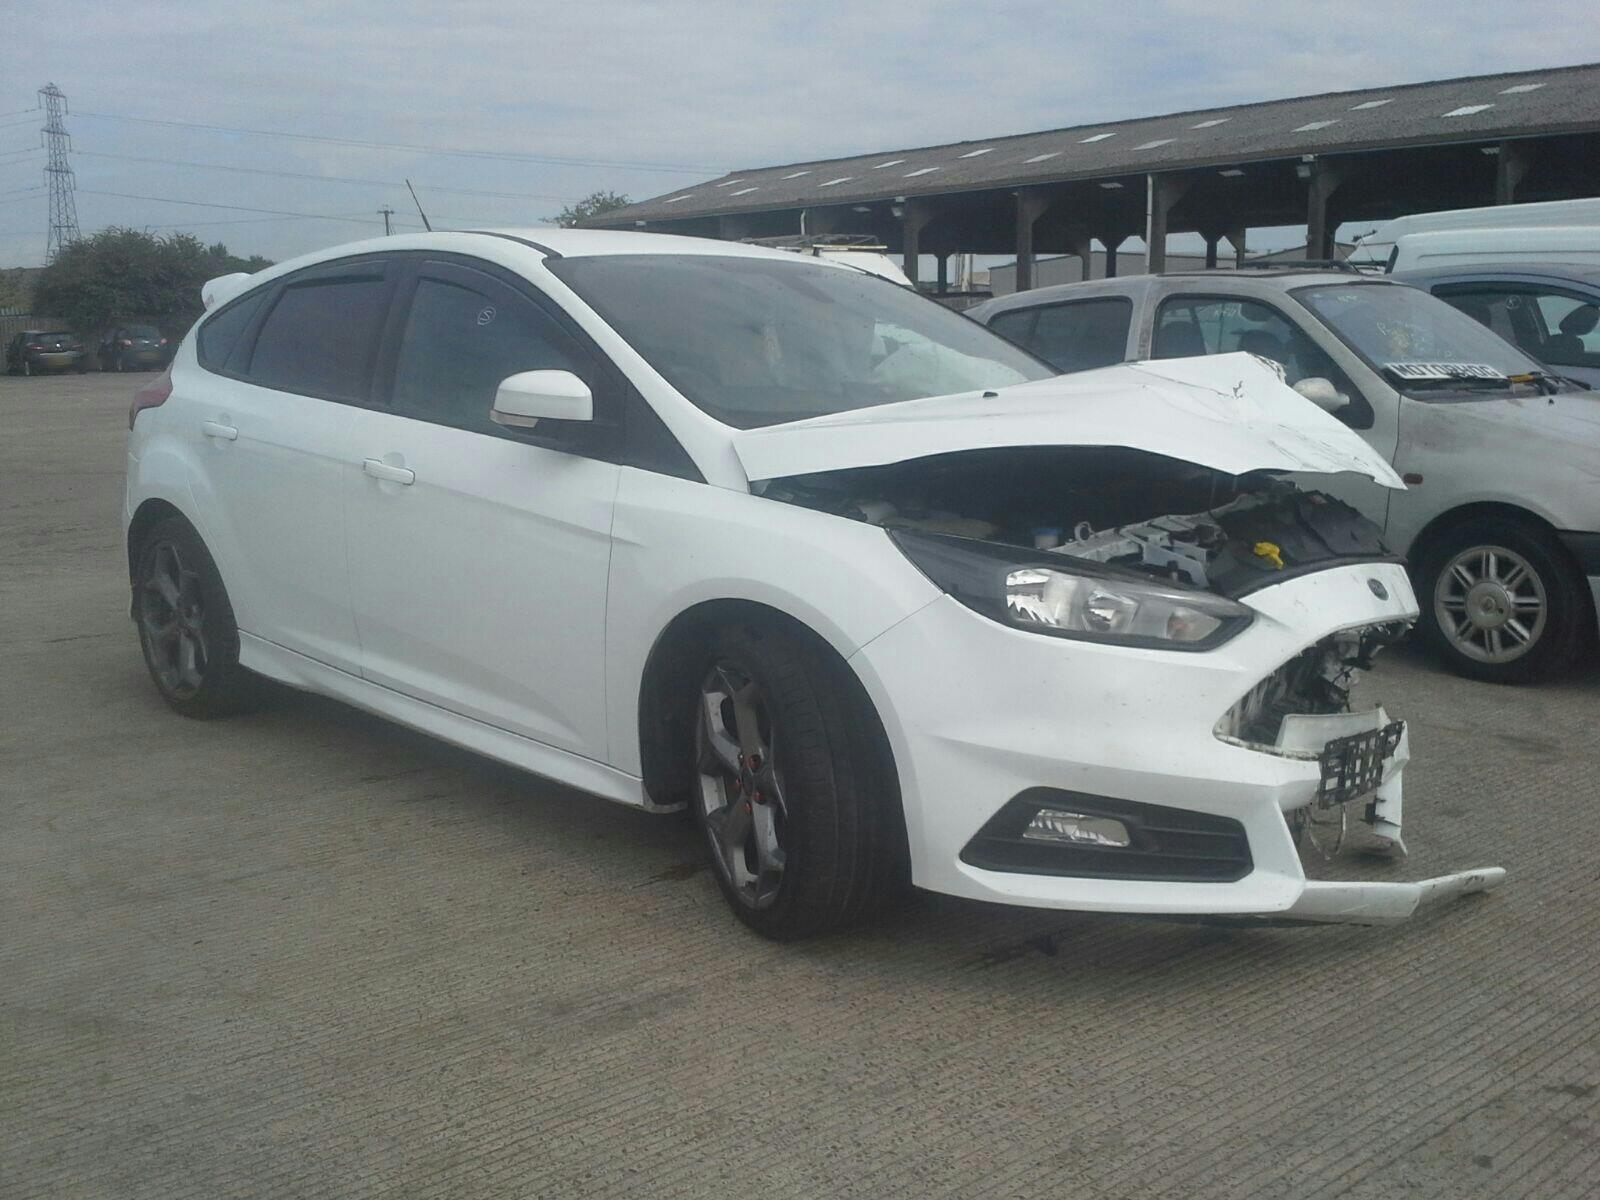 2015 Ford Focus 2014 On WHITE Bumper Rear Reinforcement